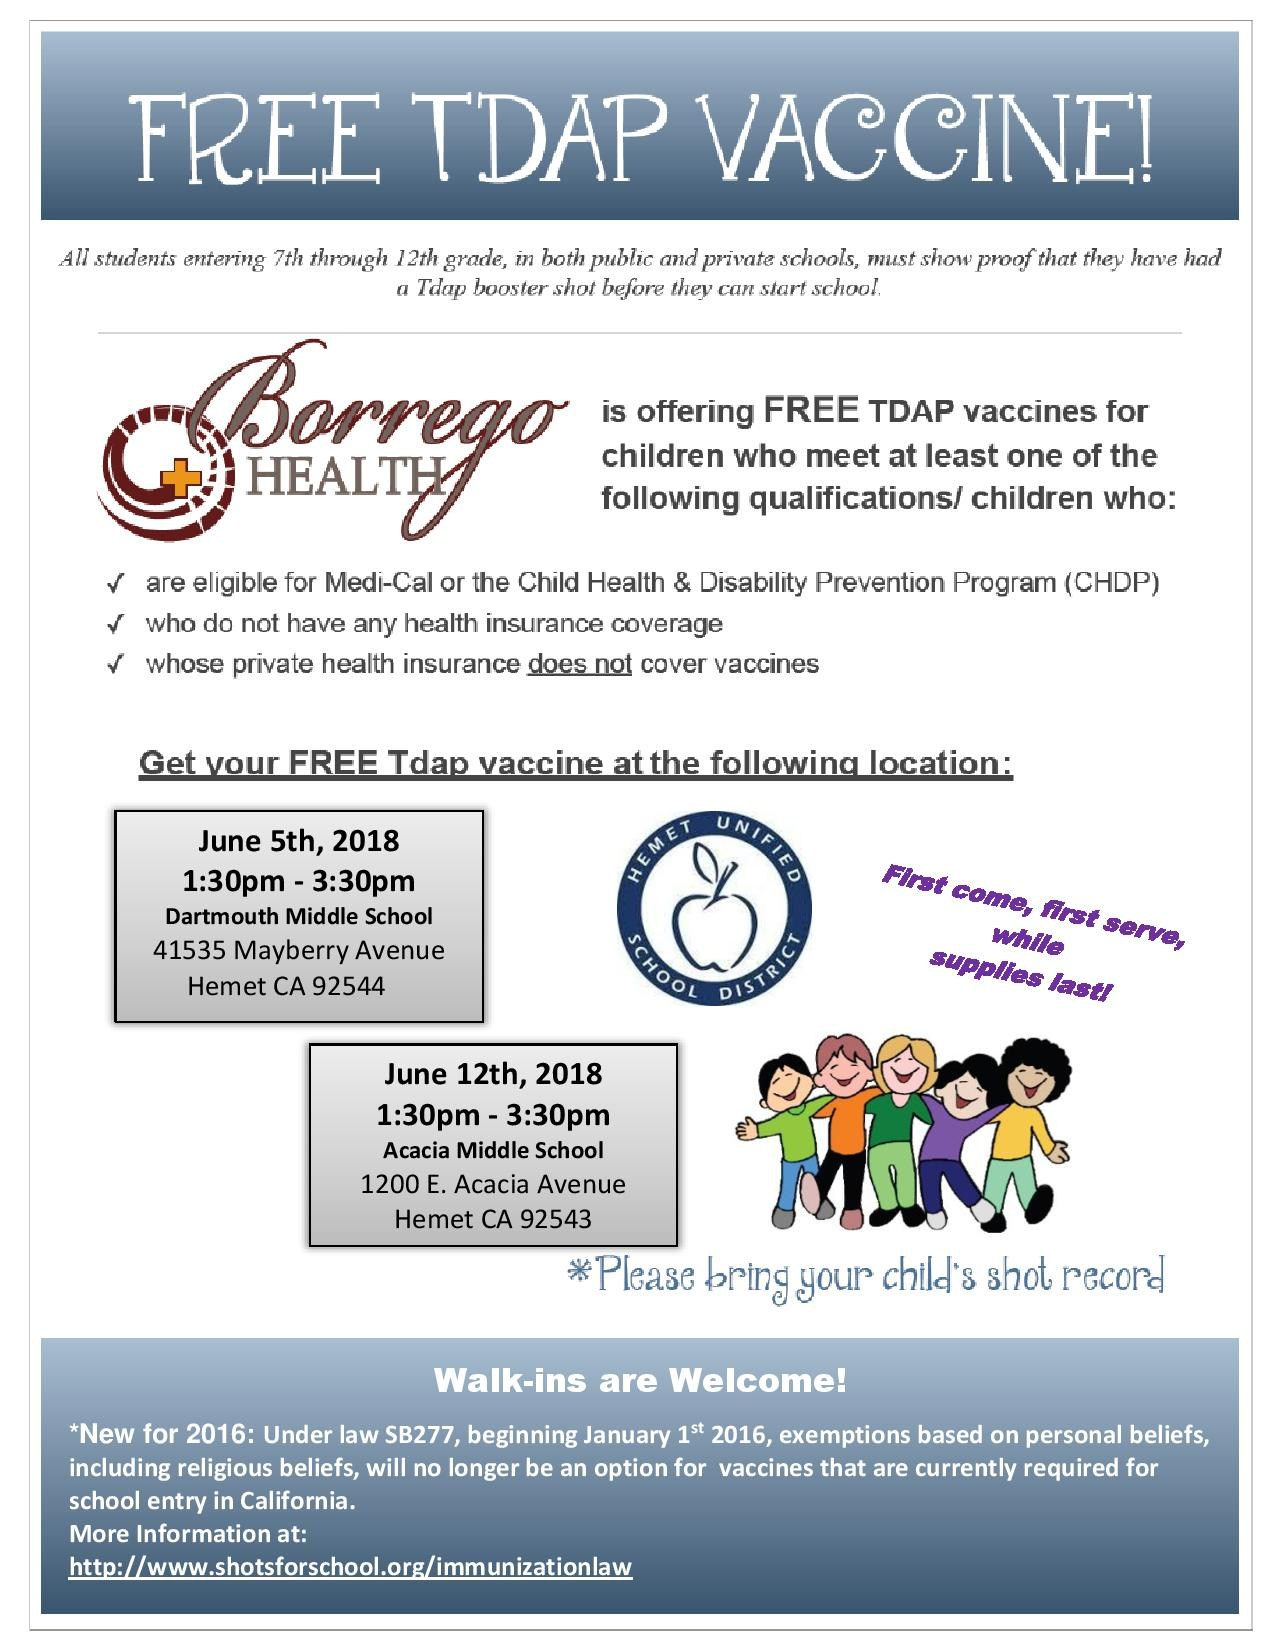 Borrego Health is offering Free TDAP vaccines for Children who meet at least one of the following qualifications: Are eligible for Medi-Cal or the Child Health & Disability Prevention Program Who do not have any Health Insurance Coverage Whose private Health insurance does not cover vaccines First come, first serve, while supplies last! June 5th, 2018  1:30pm - 3:30pm  Dartmouth Middle School   June 12th, 2018  1:30pm - 3:30pm  Acacia Middle School